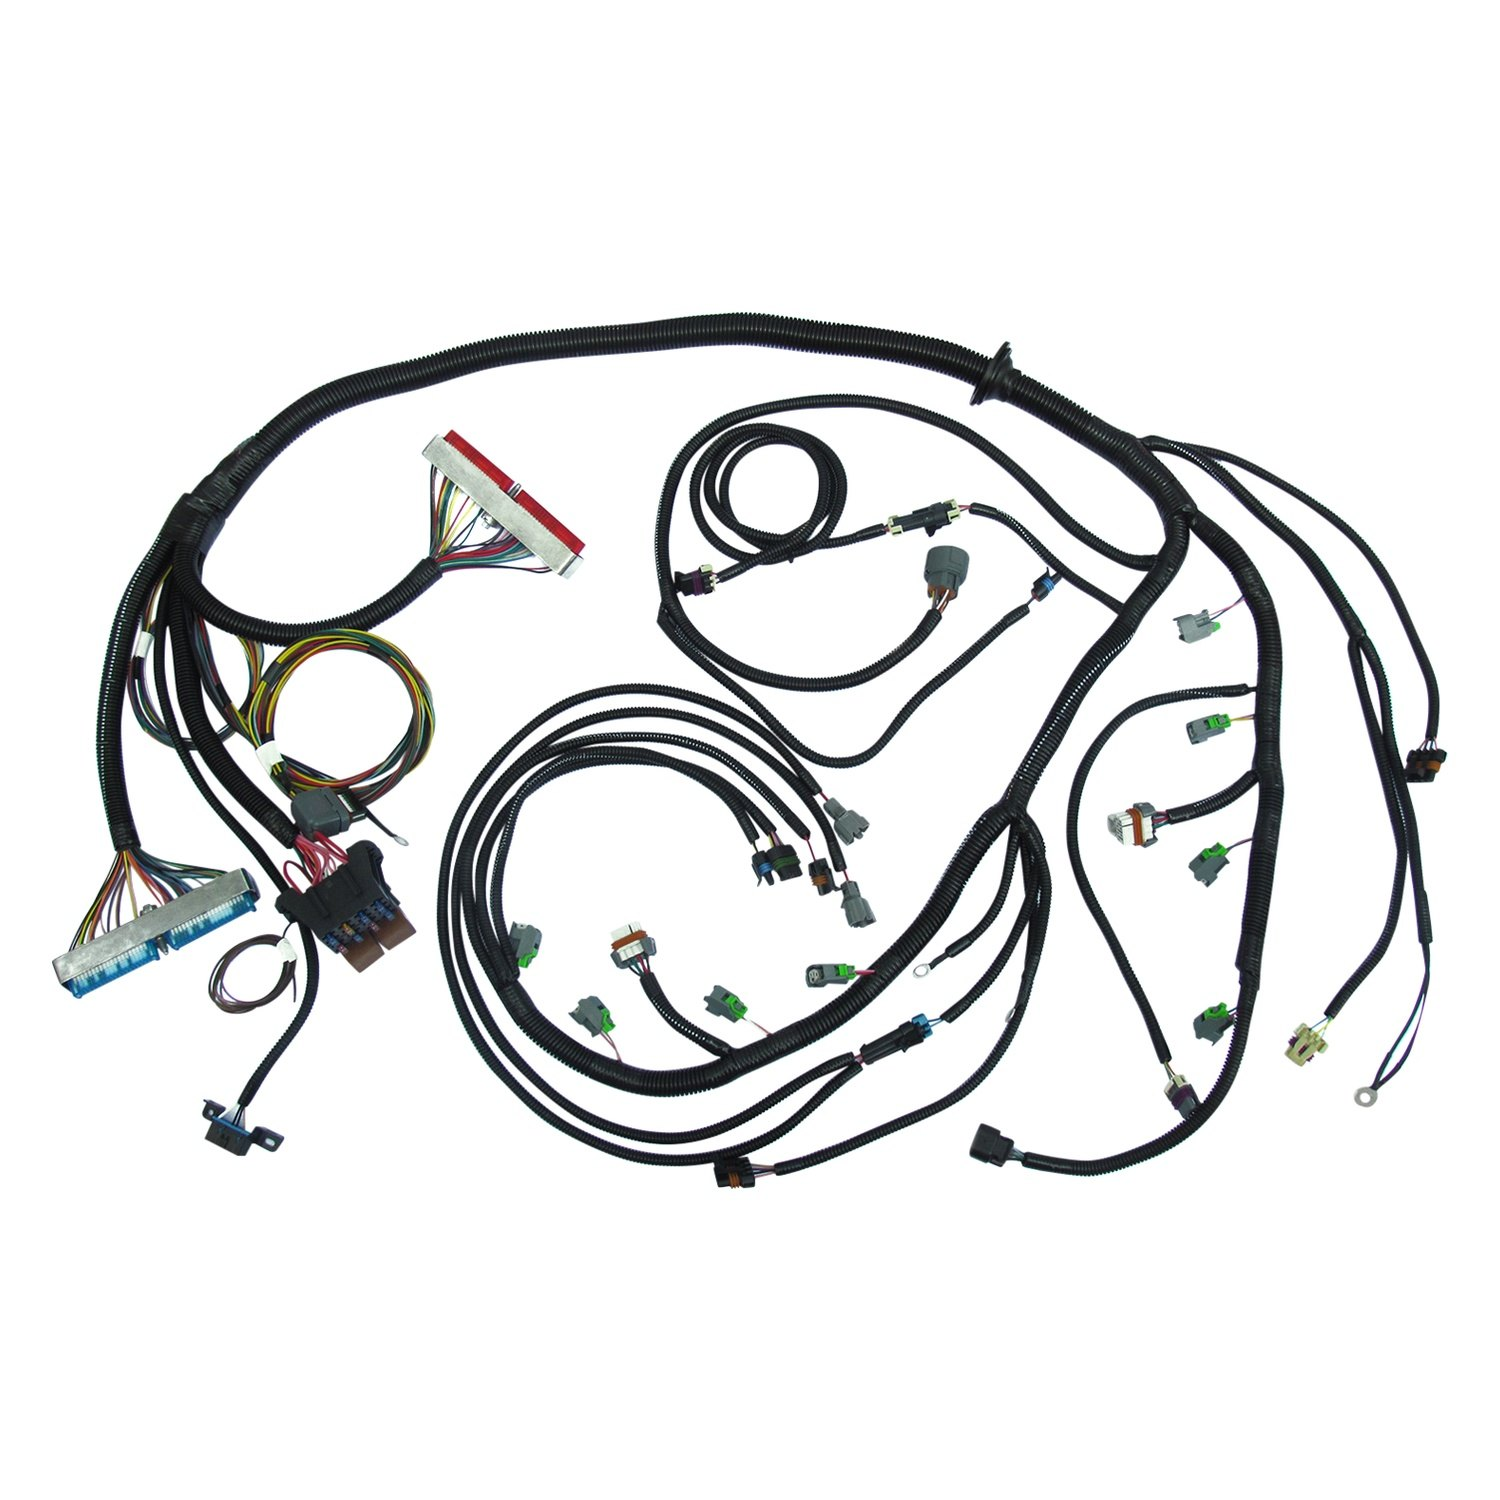 hight resolution of psi dbw standalone wiring harness